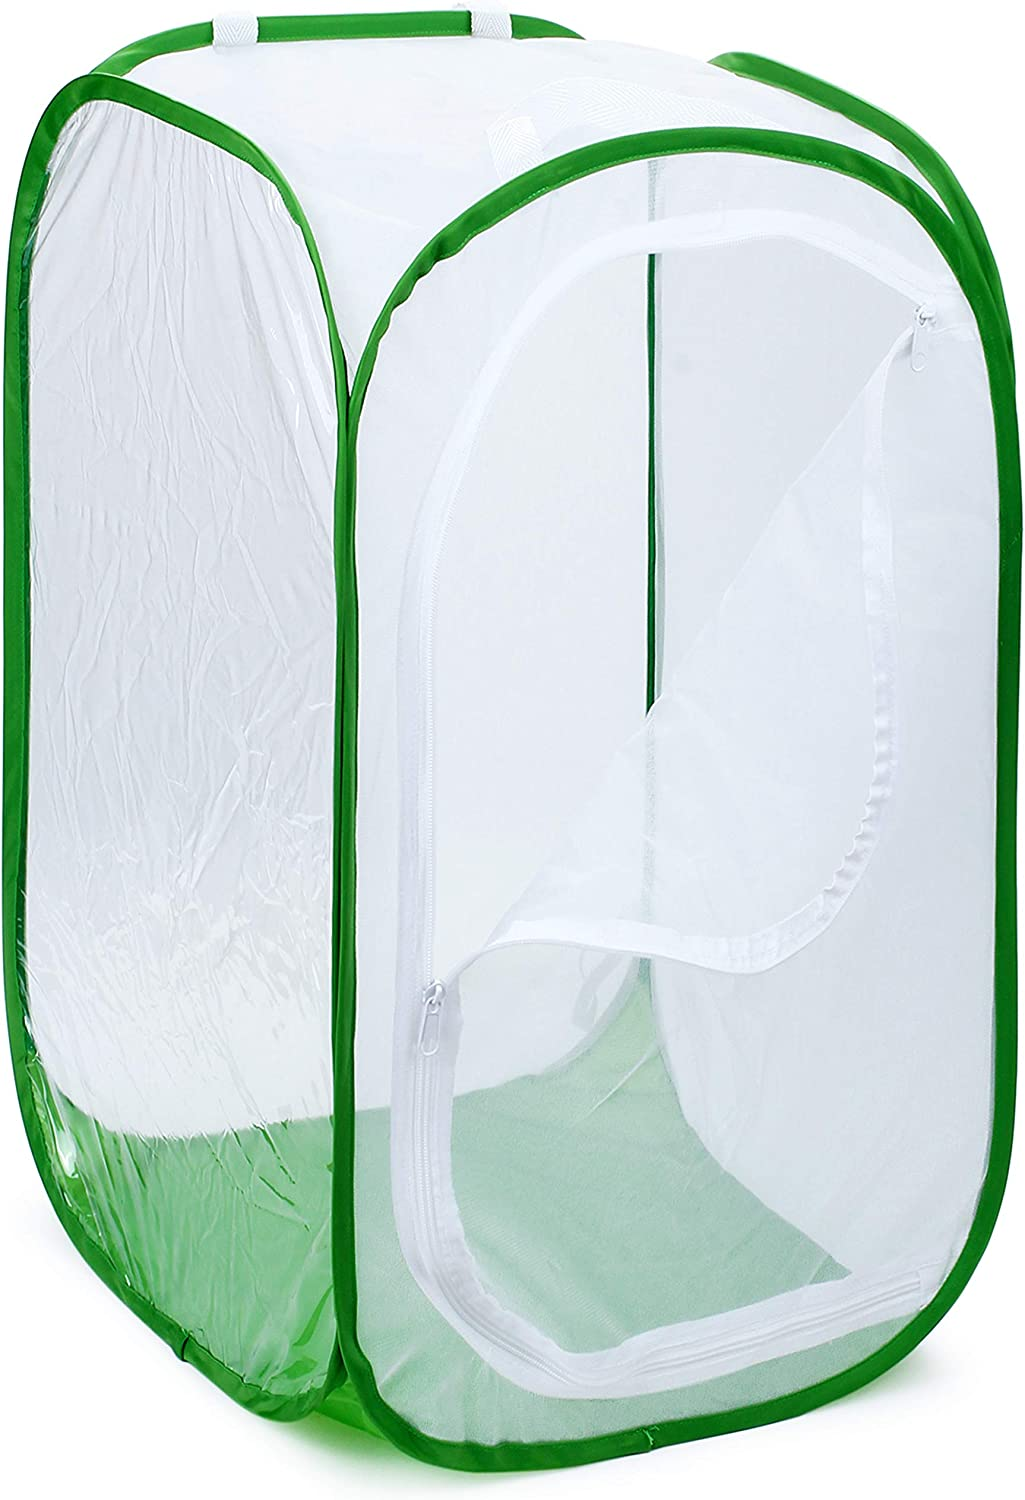 """RESTCLOUD 48"""" Large Monarch Butterfly Habitat, Giant Collapsible Insect Mesh Cage Terrarium Pop-up 28 x 28 x 48 Inches"""